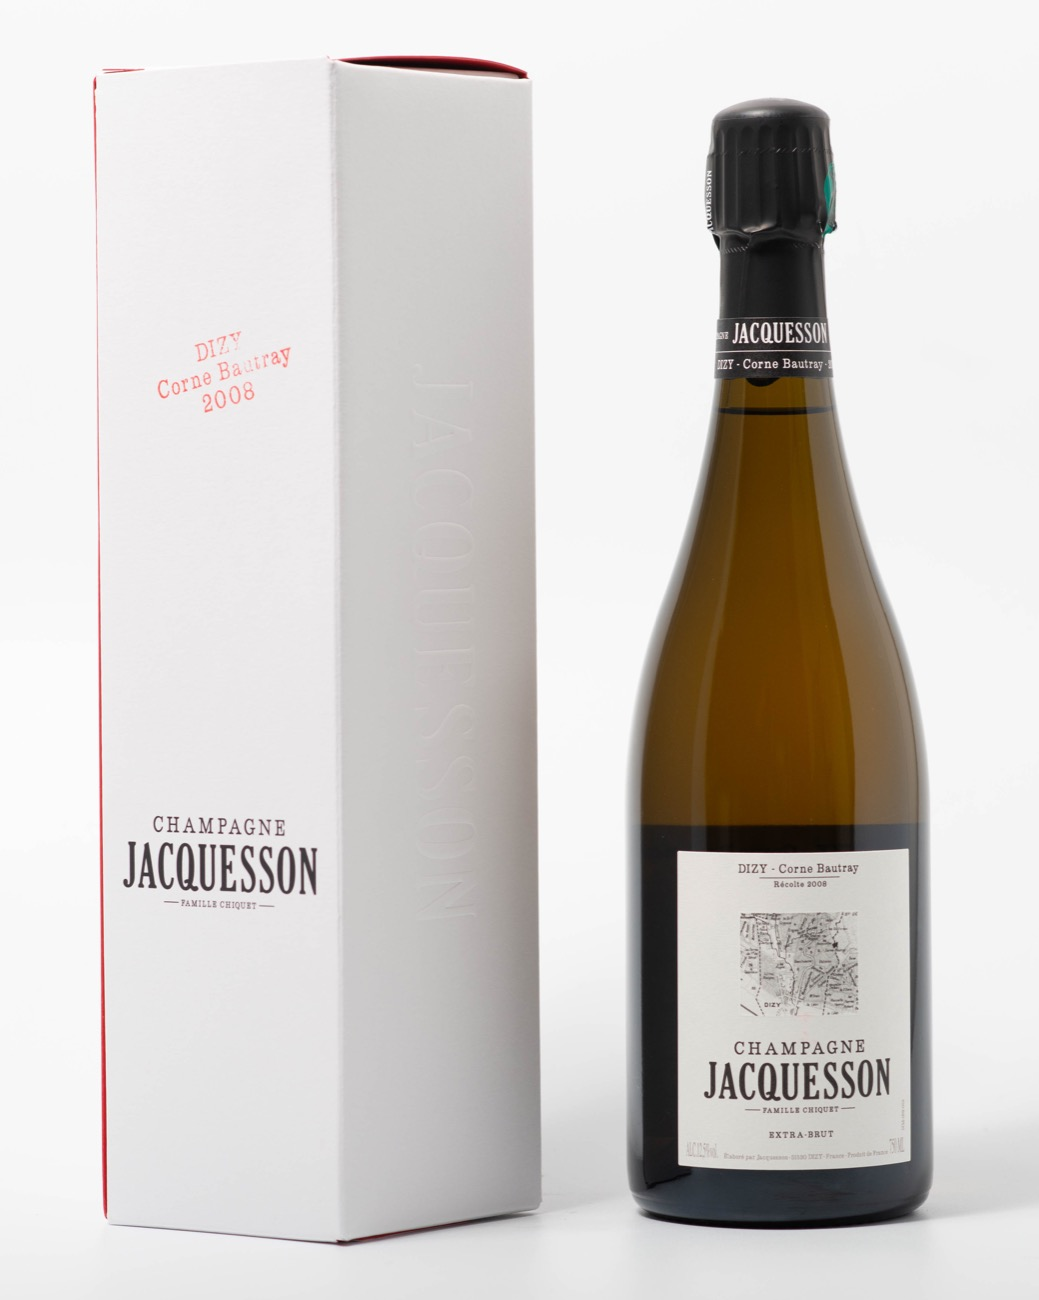 Jacquesson sizy corne bautray 2008 4